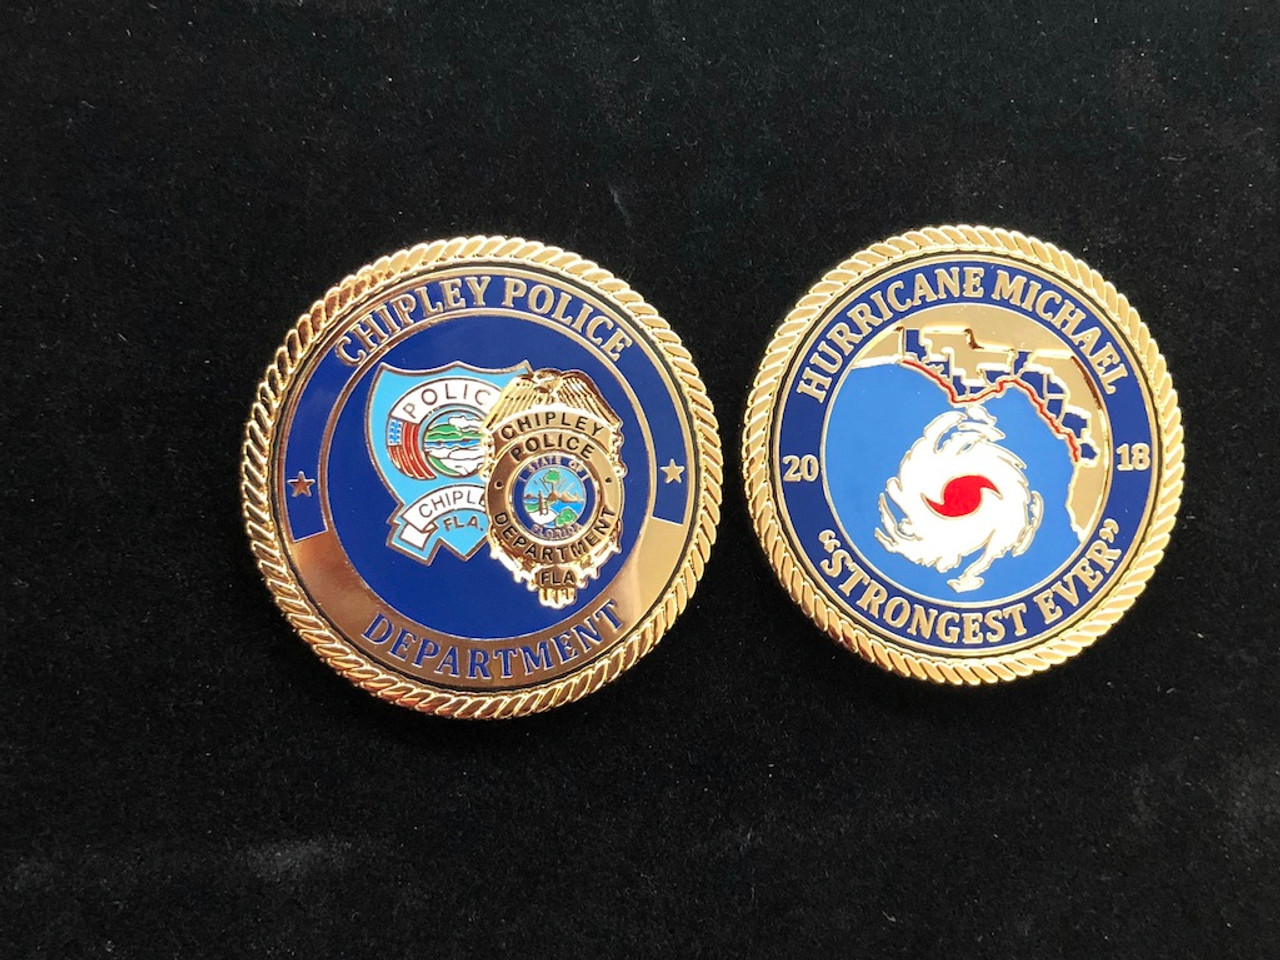 CHIPLEY POLICE  FL HURRICANE MICHAEL COIN RARE FROM FLORIDA LAW ENFORCEMENT